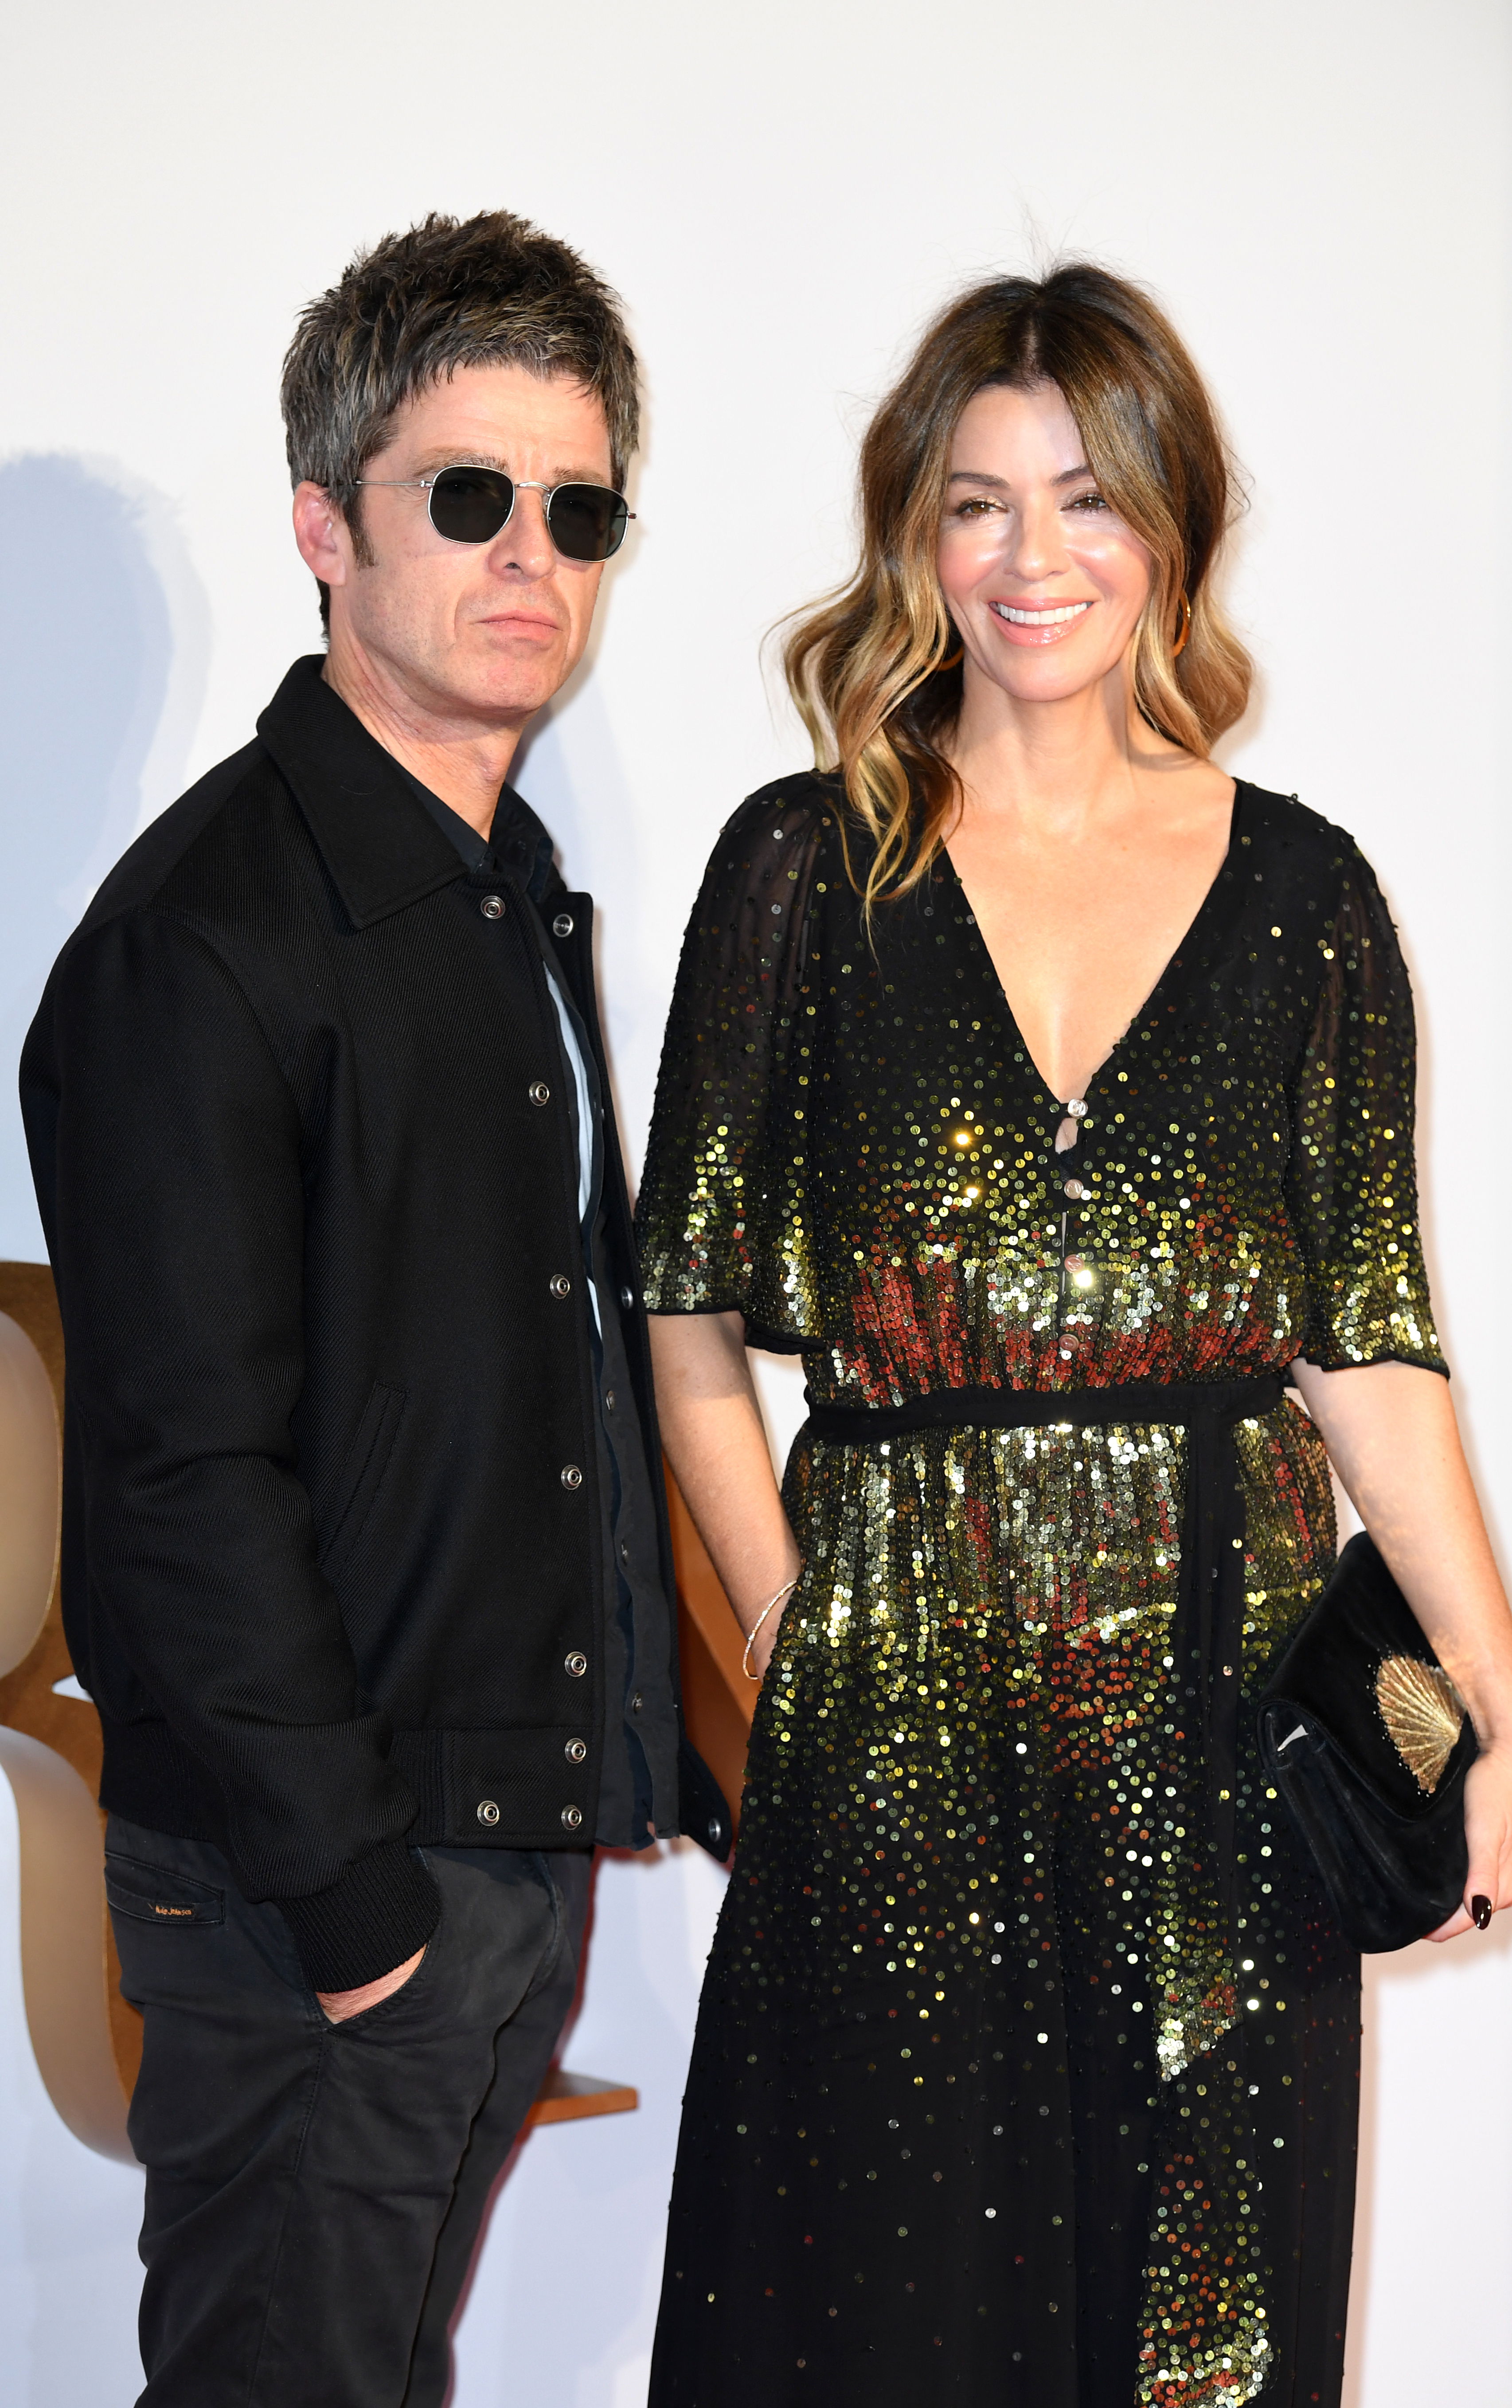 Noel Gallagher has hit out at his brother over an alleged 'threatening message' he sent his daughter. Credit: PA